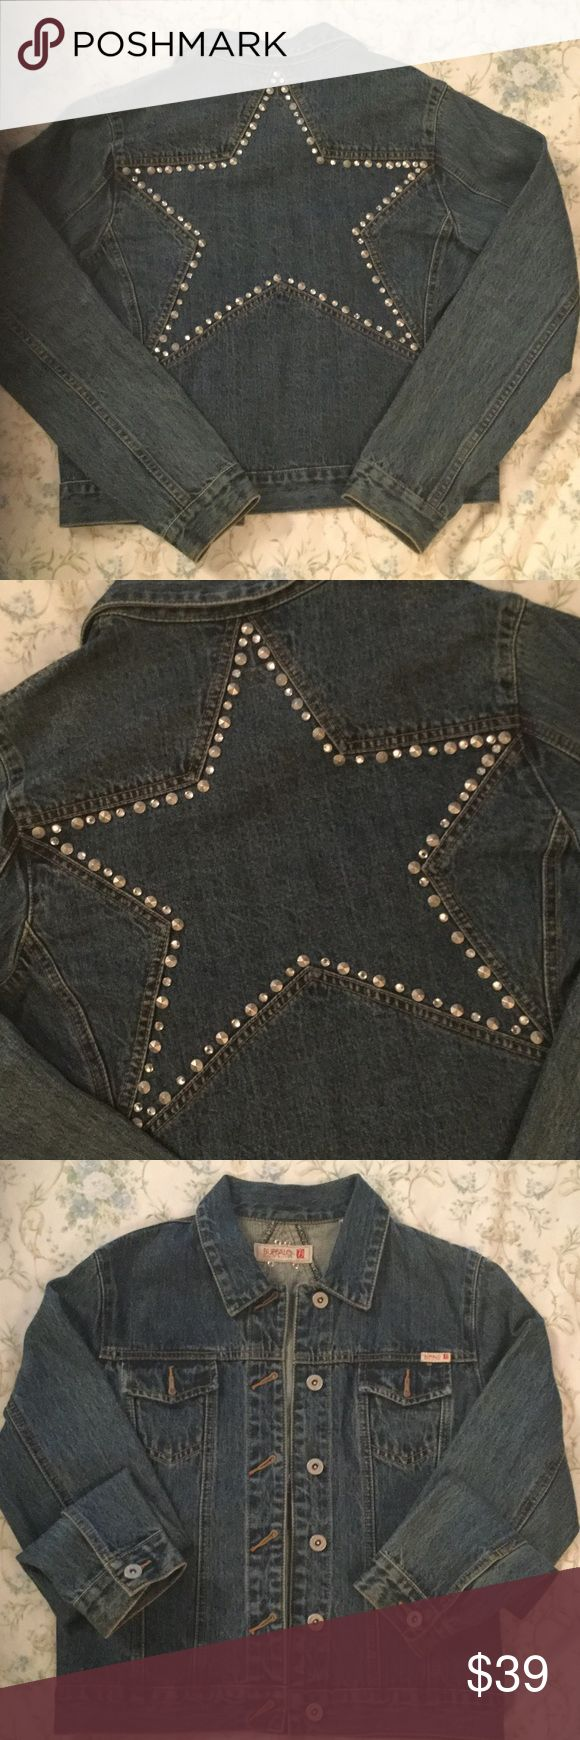 🌷Buffalo David Bitton Star Studded Denim Jacket🌷 ⭐️Buffalo David Bitton Star Studded Denim Jacket⭐️Barely worn. Perfect Condition⭐️Size M⭐️100% Cotton⭐️6 Buttons in front. 1 button at end of each sleeve. ⭐️Long sleeves⭐️Closet Staple⭐️ Buffalo David Bitton Jackets & Coats Jean Jackets